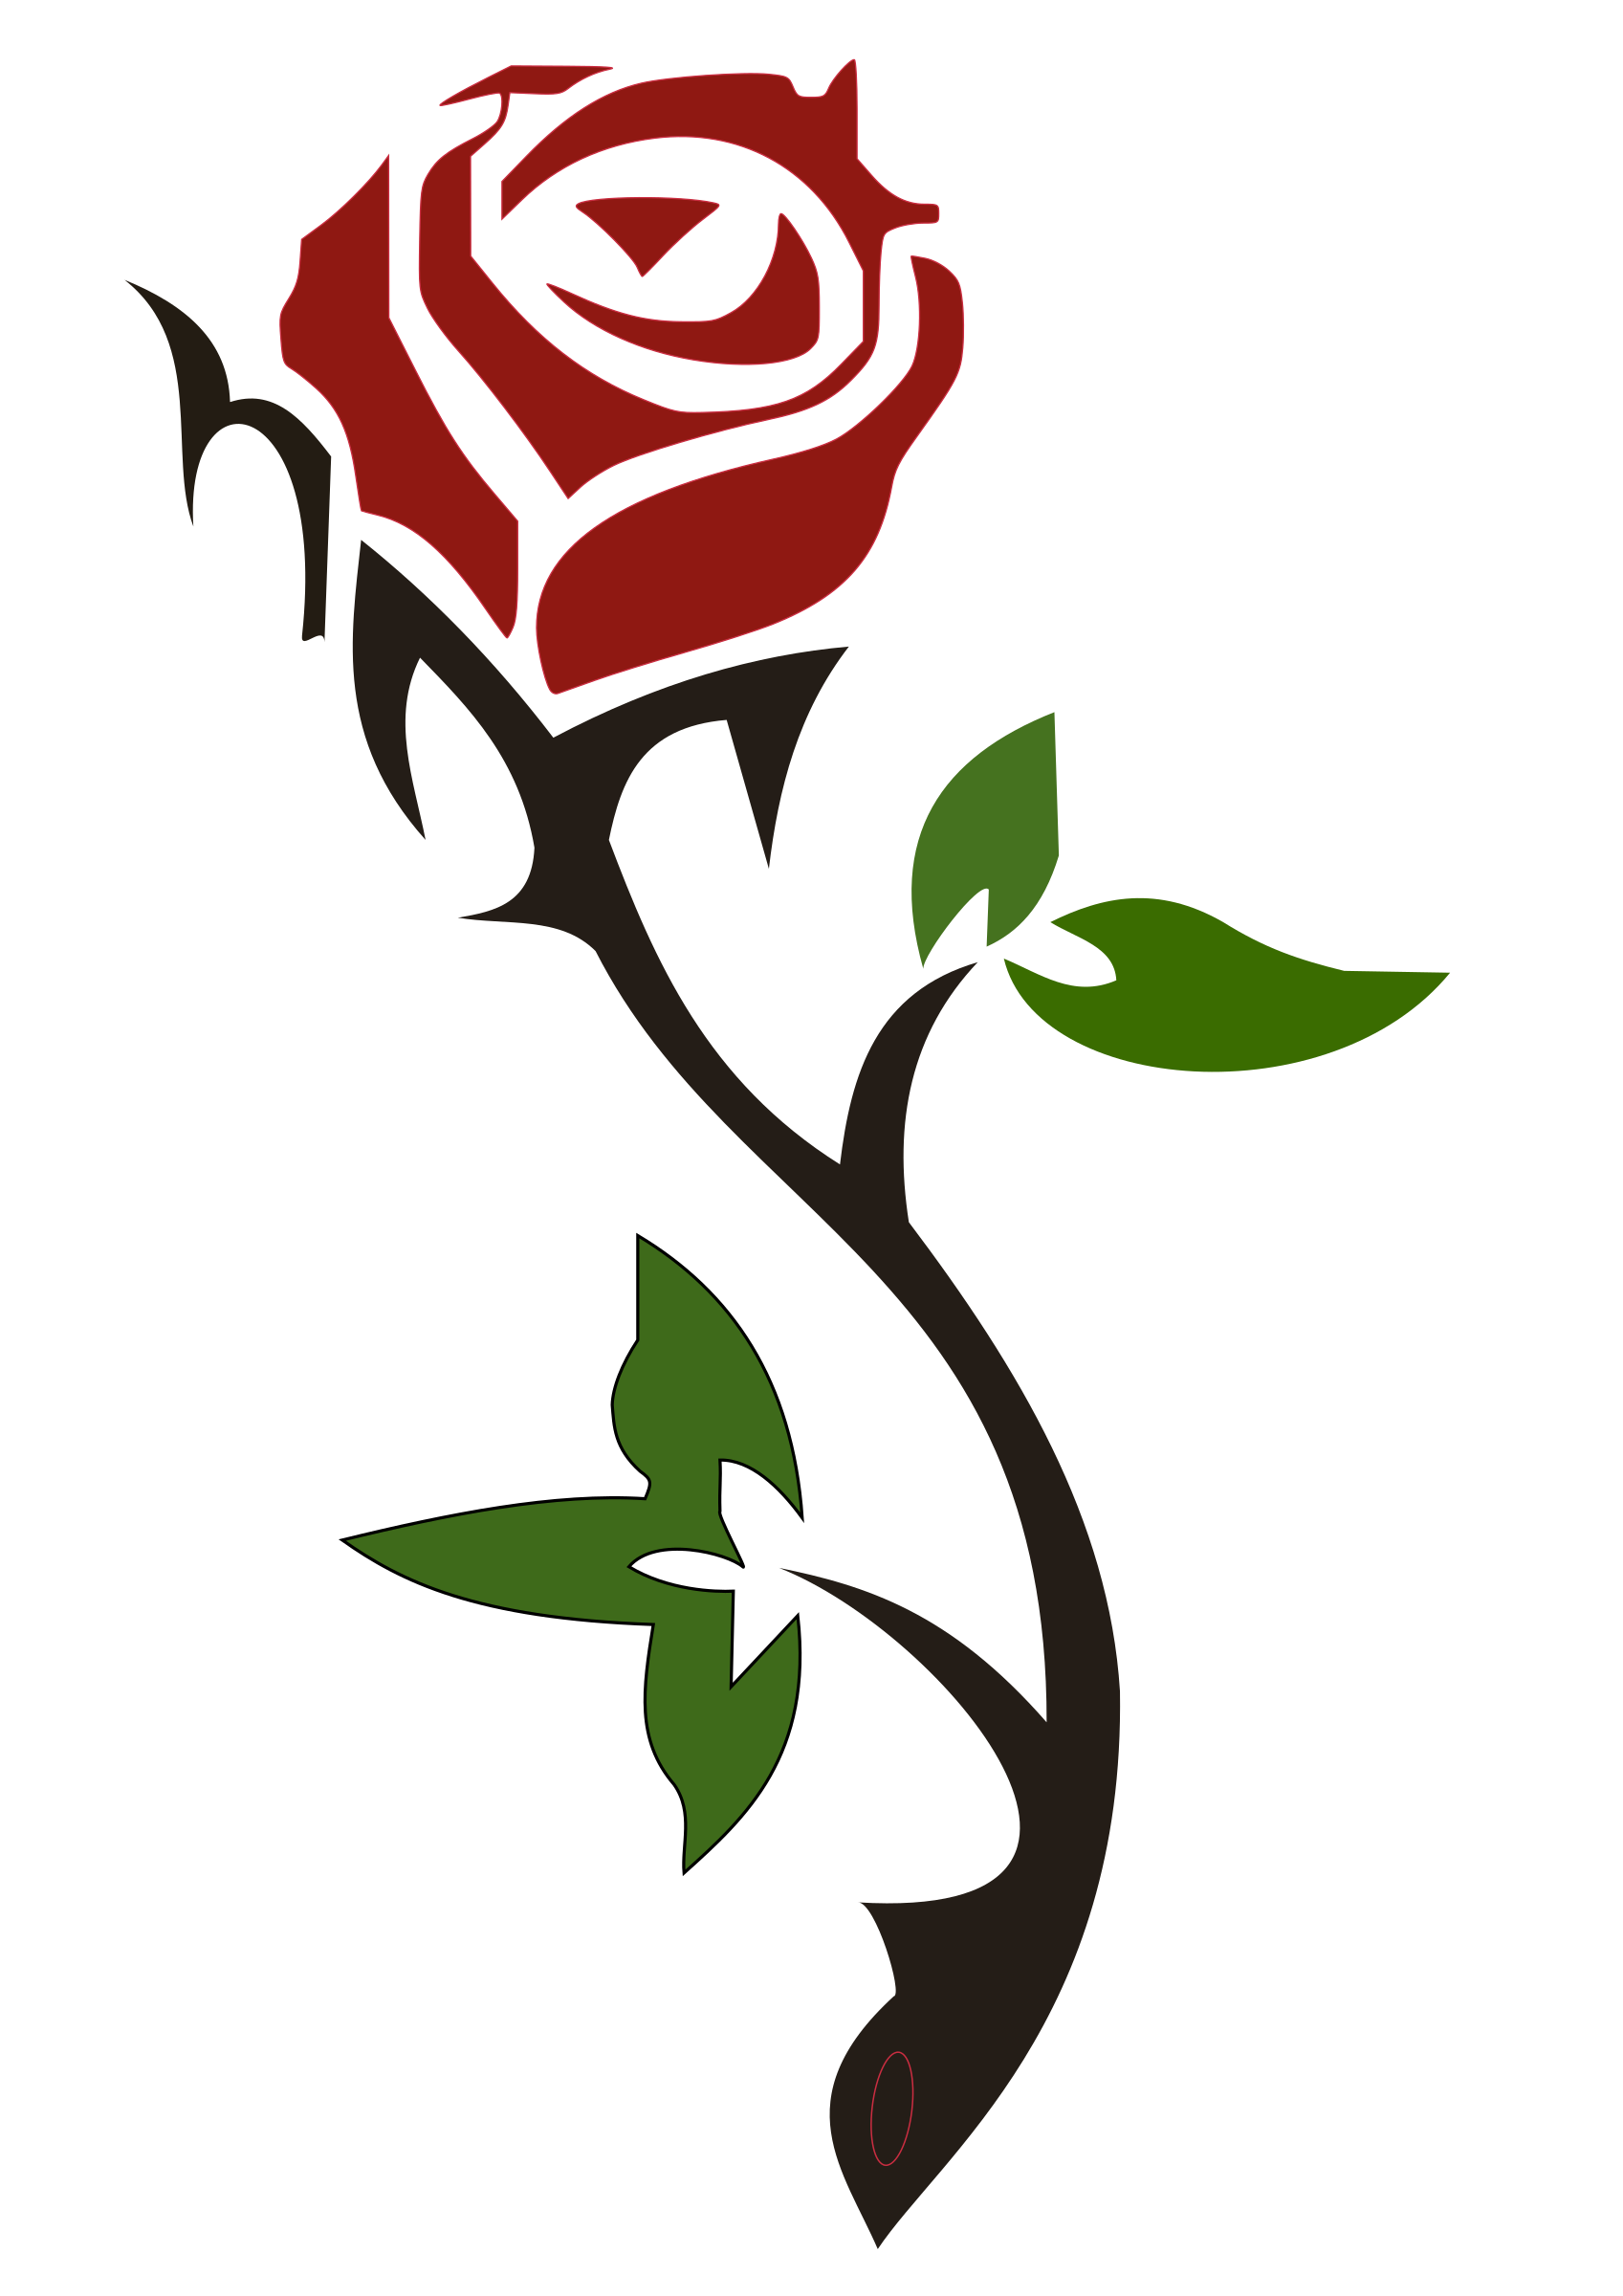 Clipart roses simple. Pictures rose drawings art